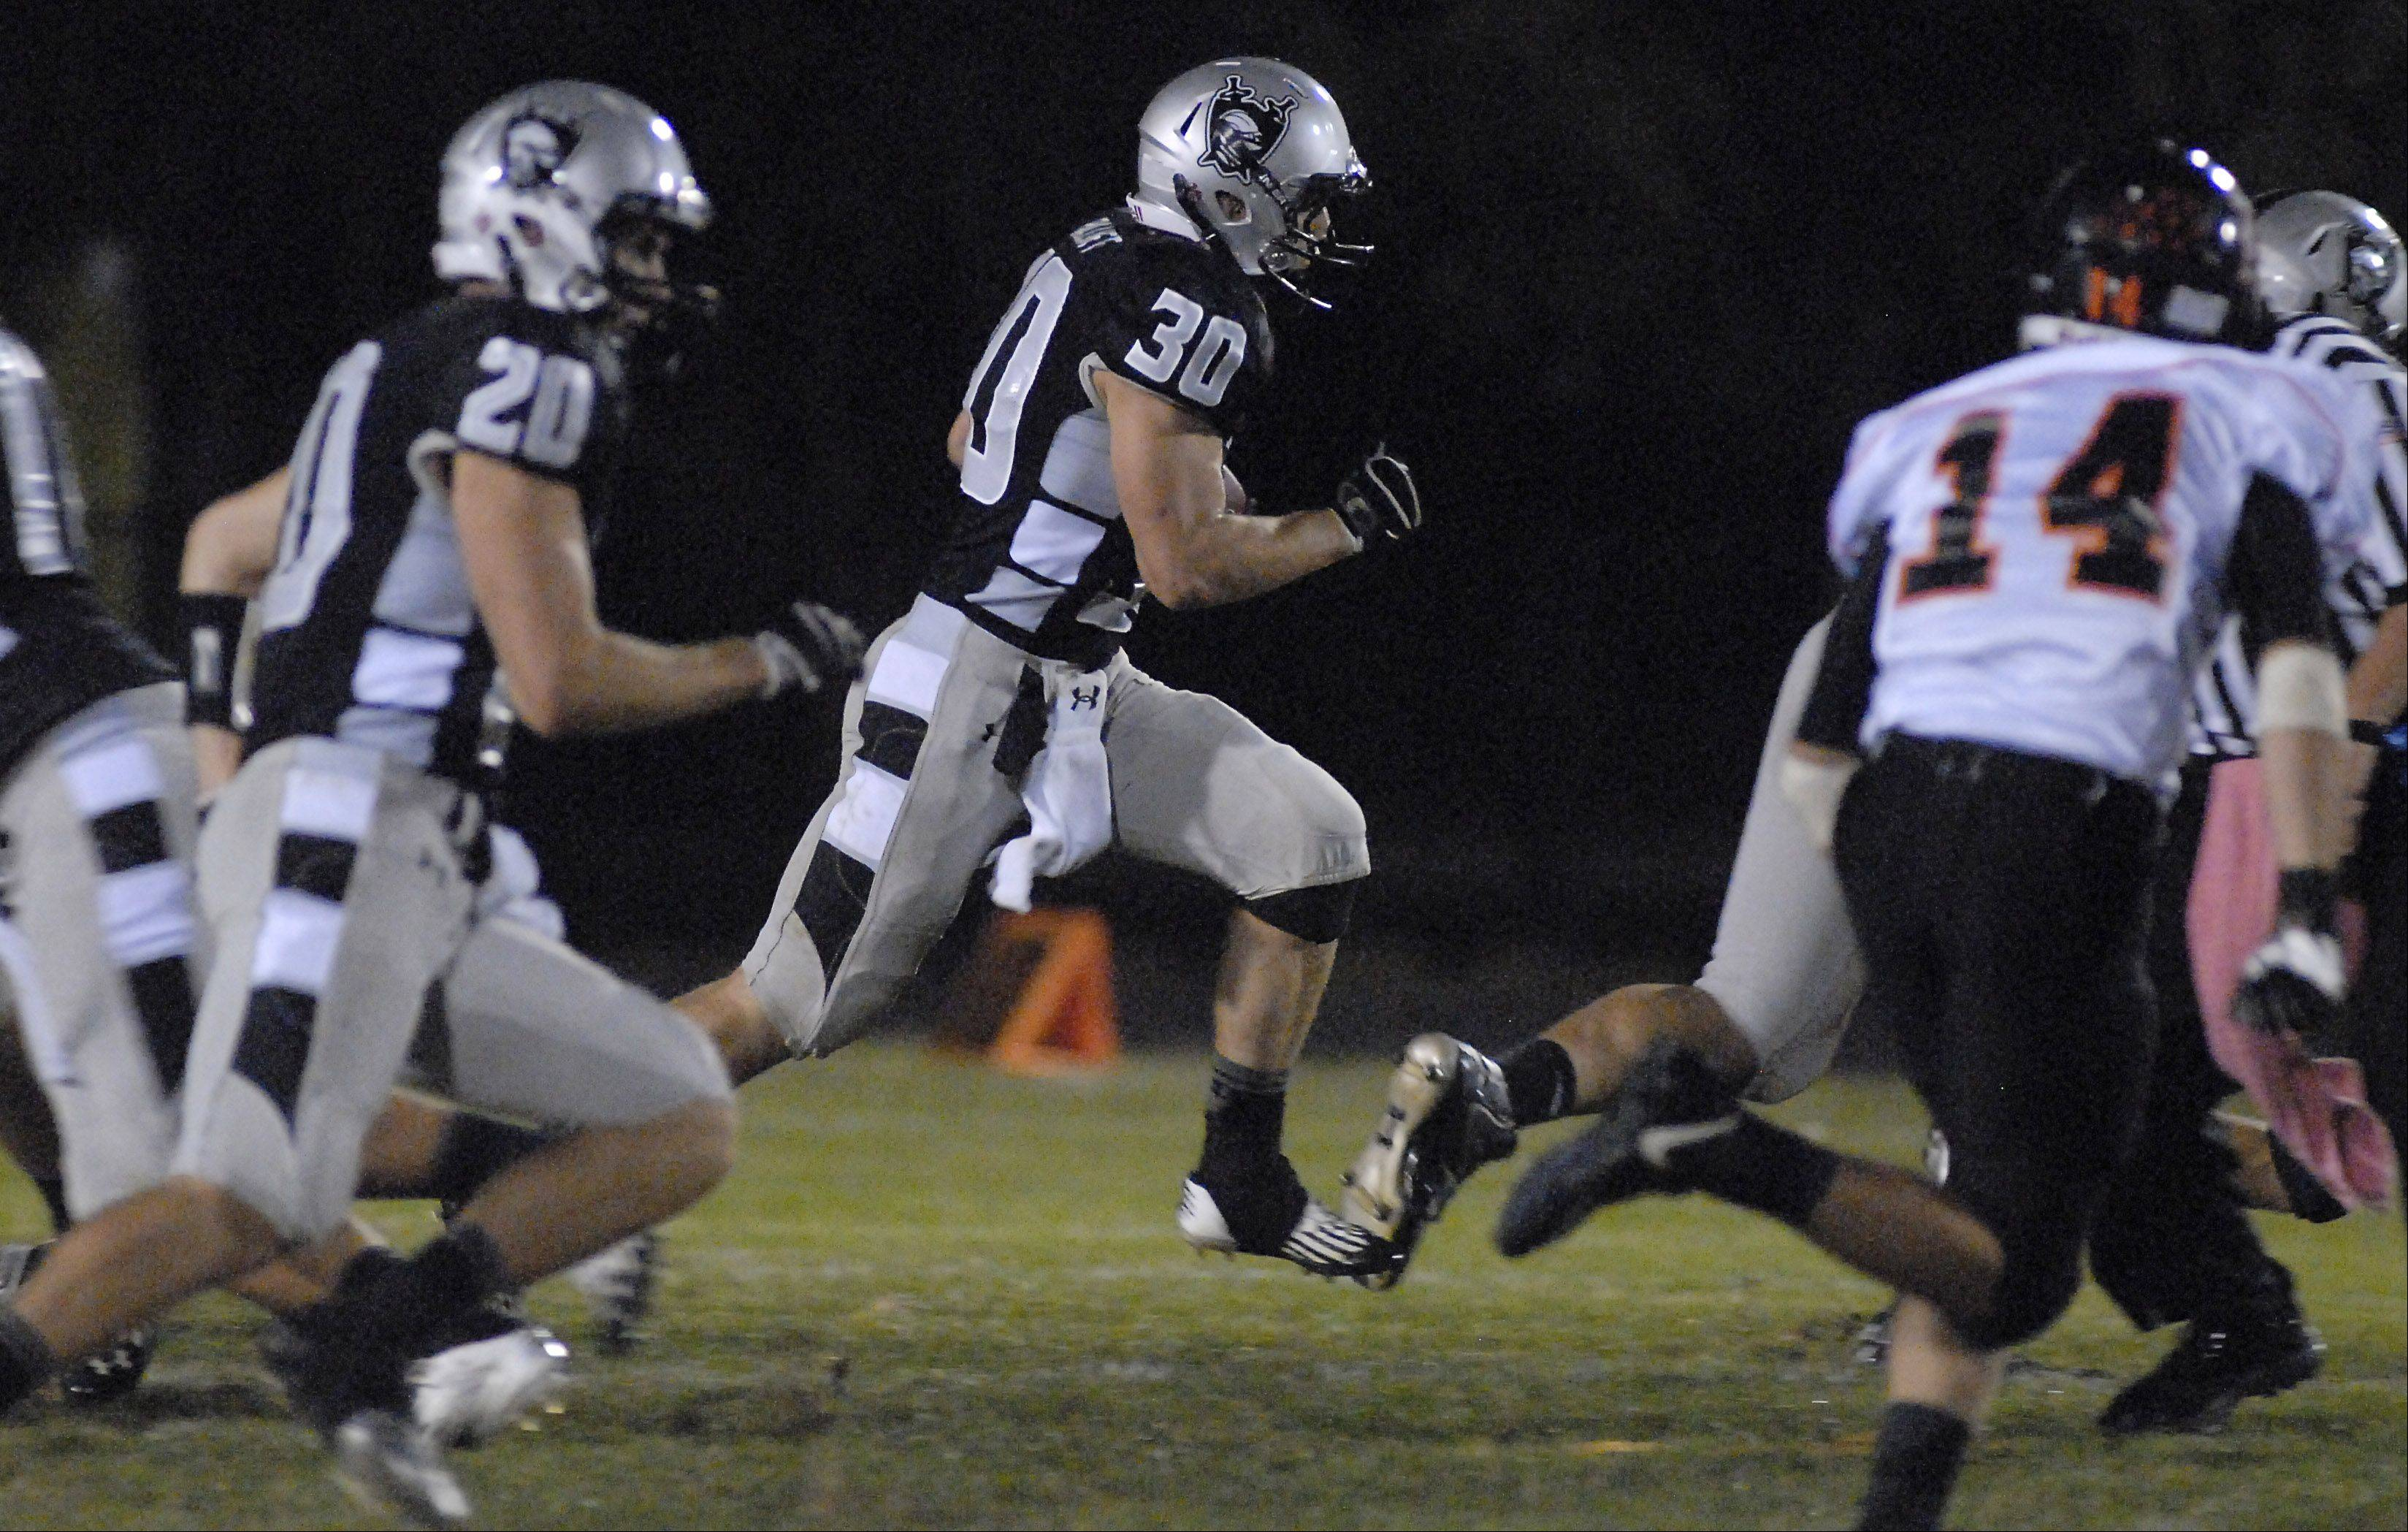 Kaneland's Jesse Balluff sprints through a hole in DeKalb's defense on his way to the end zone in the first quarter.